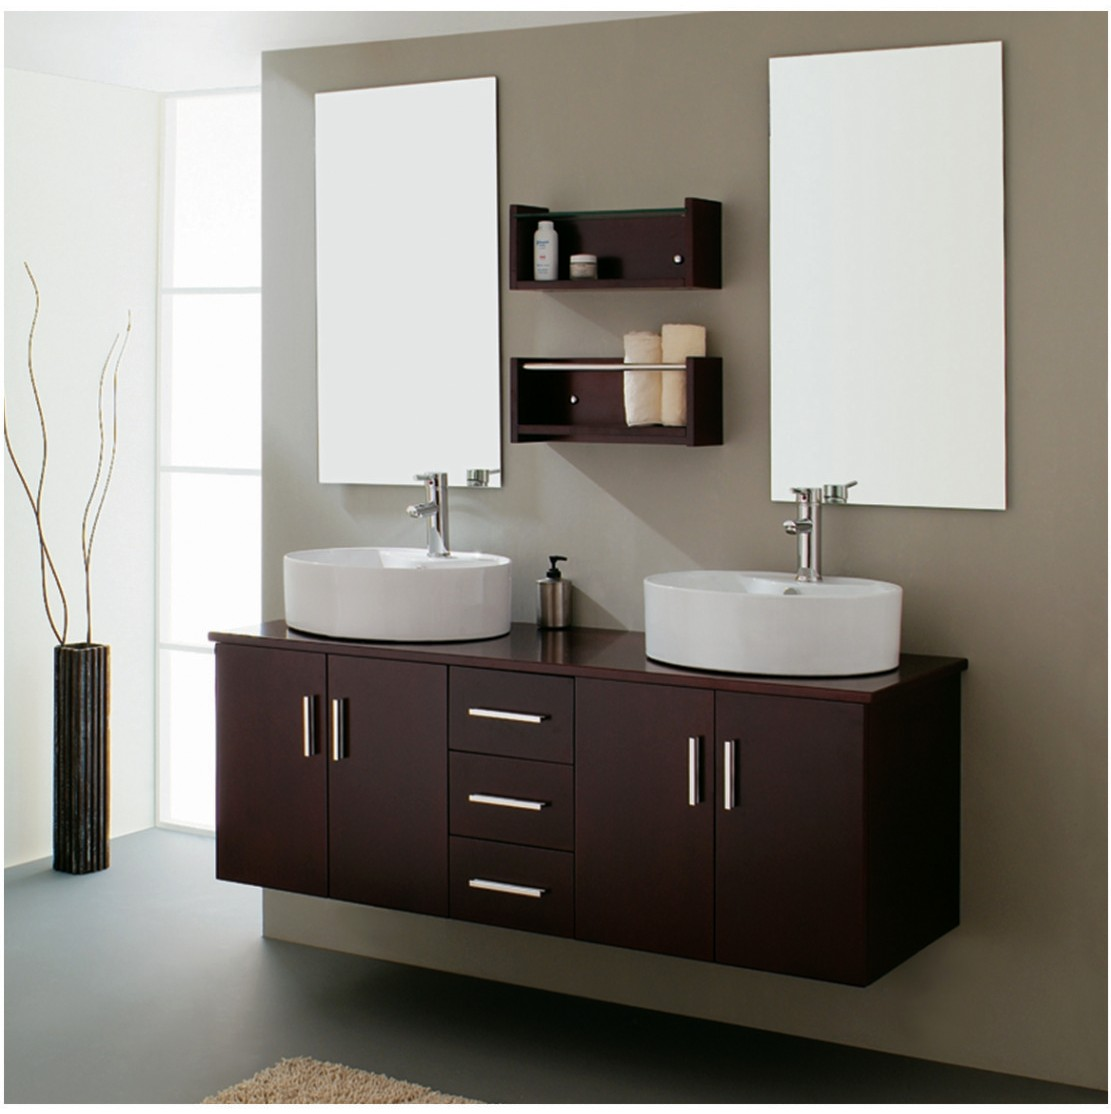 modern bathroom double sink home decorating ideas On bathroom vanity ideas modern